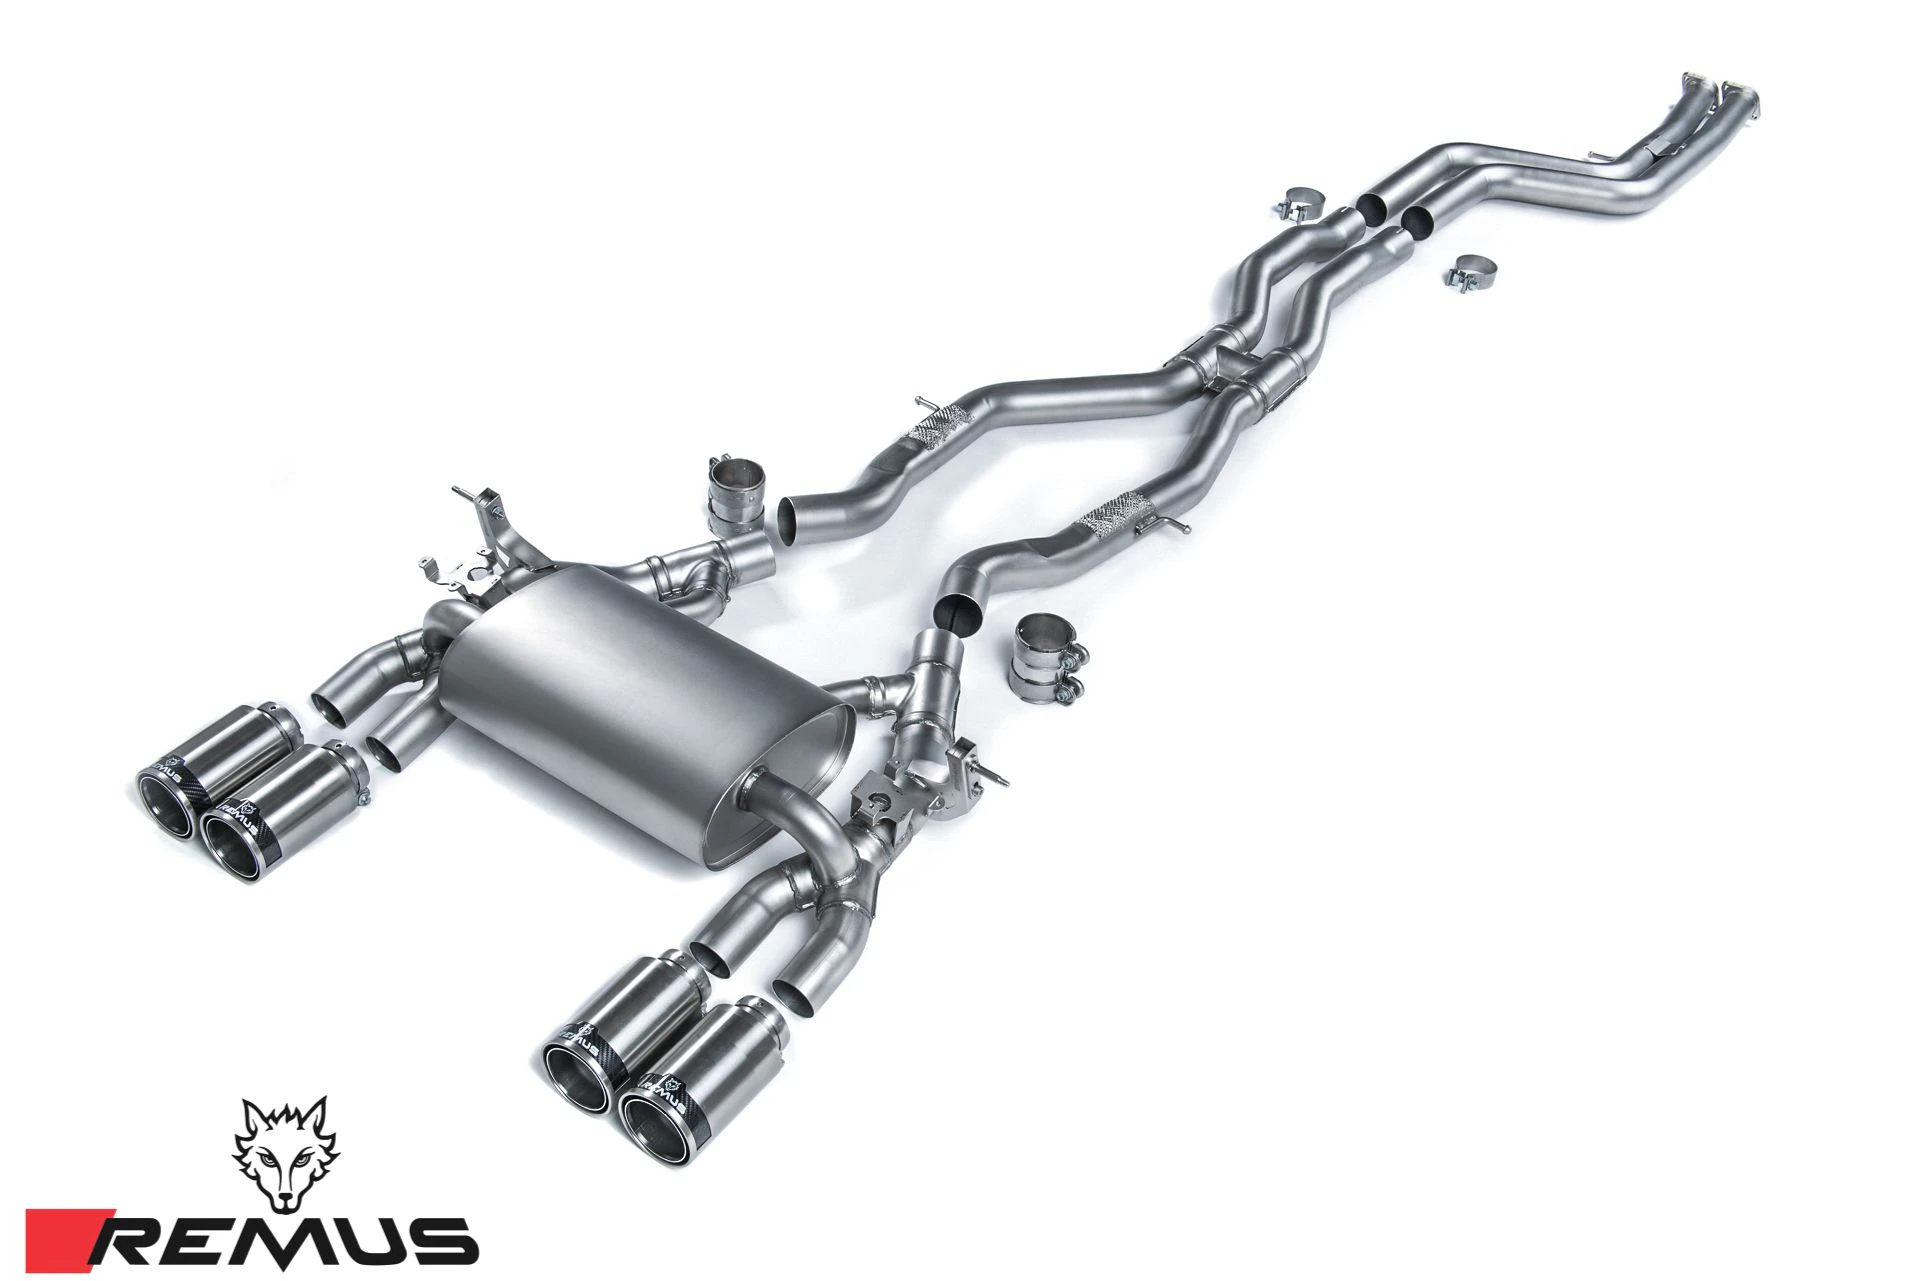 REMUS Catback System - Pure Power and Perfect Sound - Remus Exhaust UK